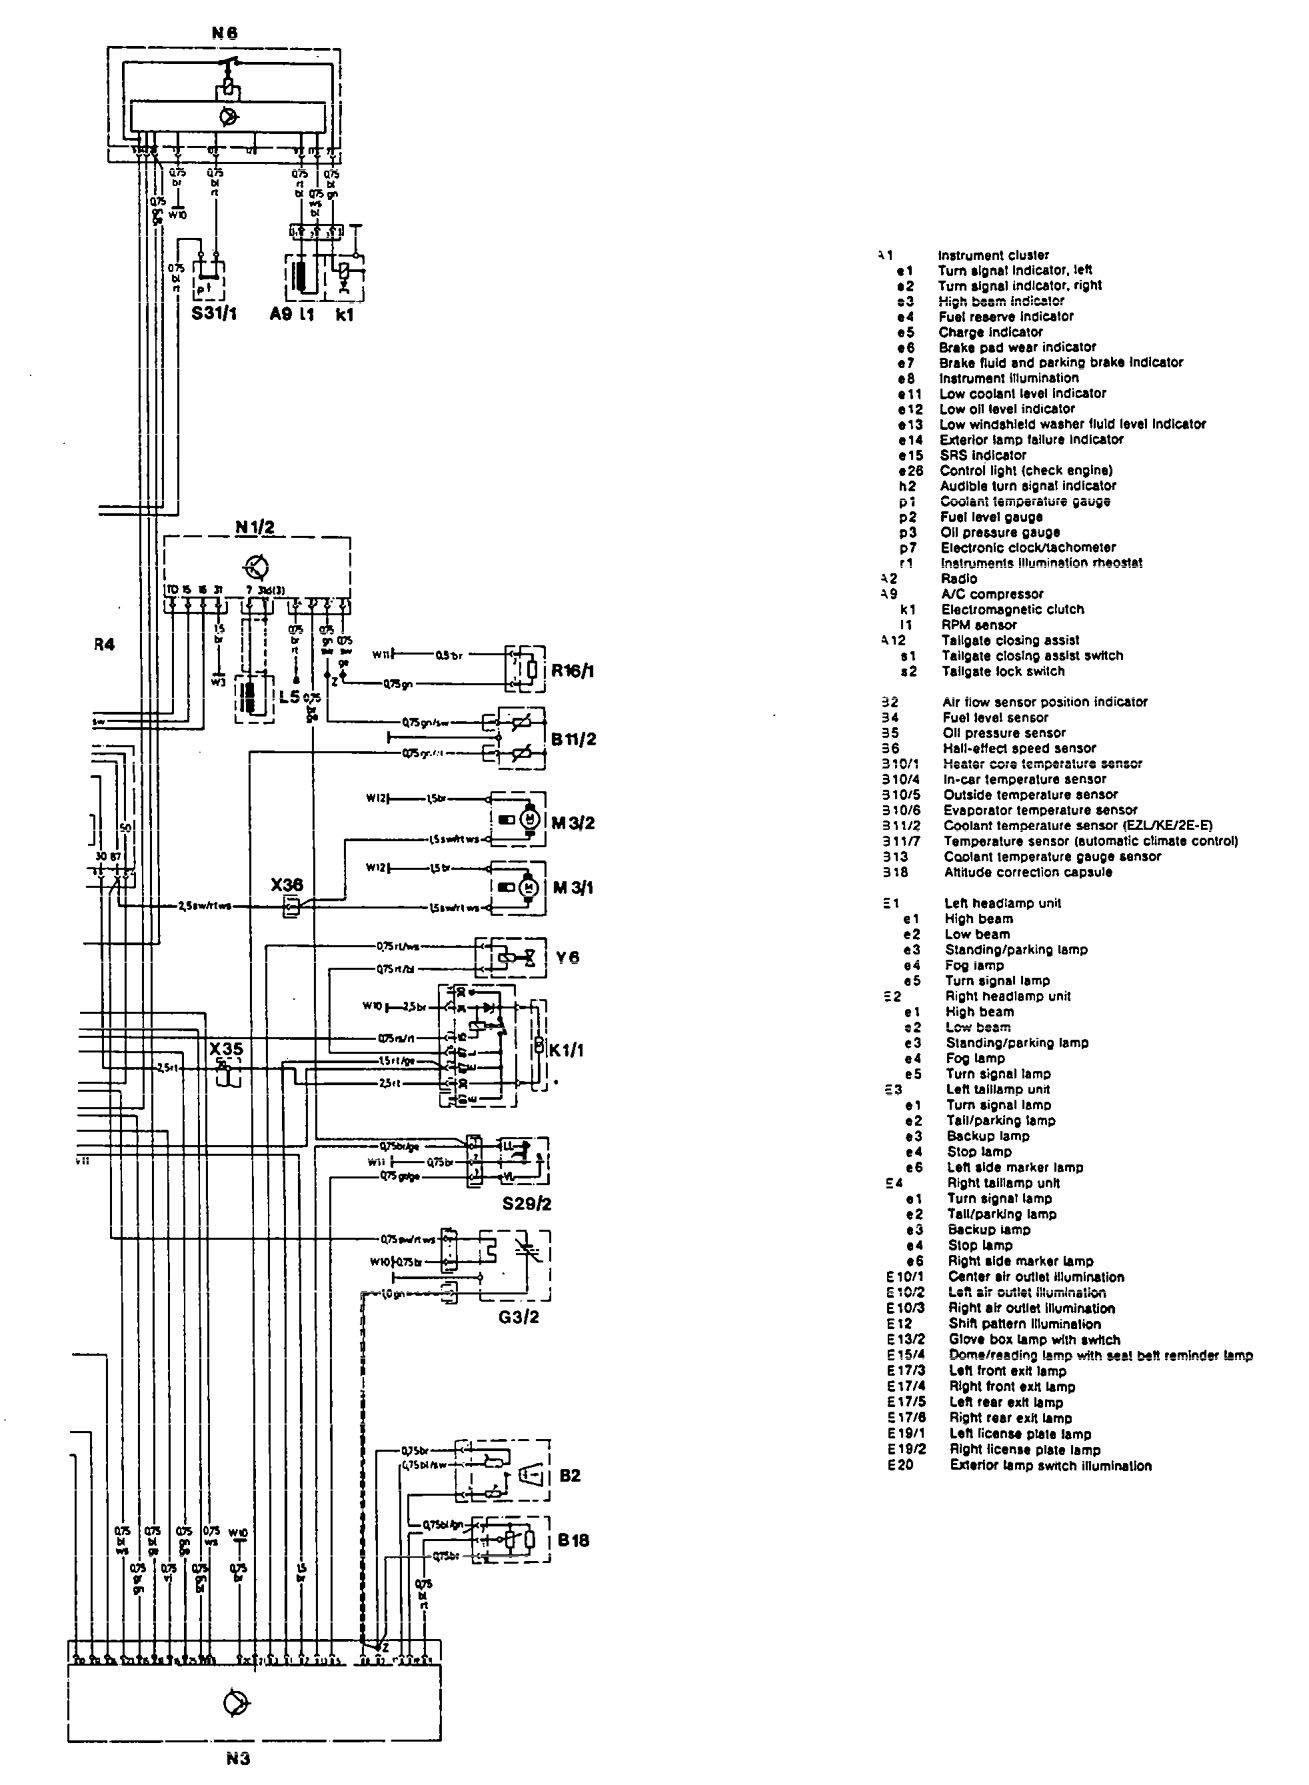 Mercedes Benz 300te 1992 1993 Wiring Diagrams Audible Ignition Switch Plug Diagram 1975 To 1995 Warning System